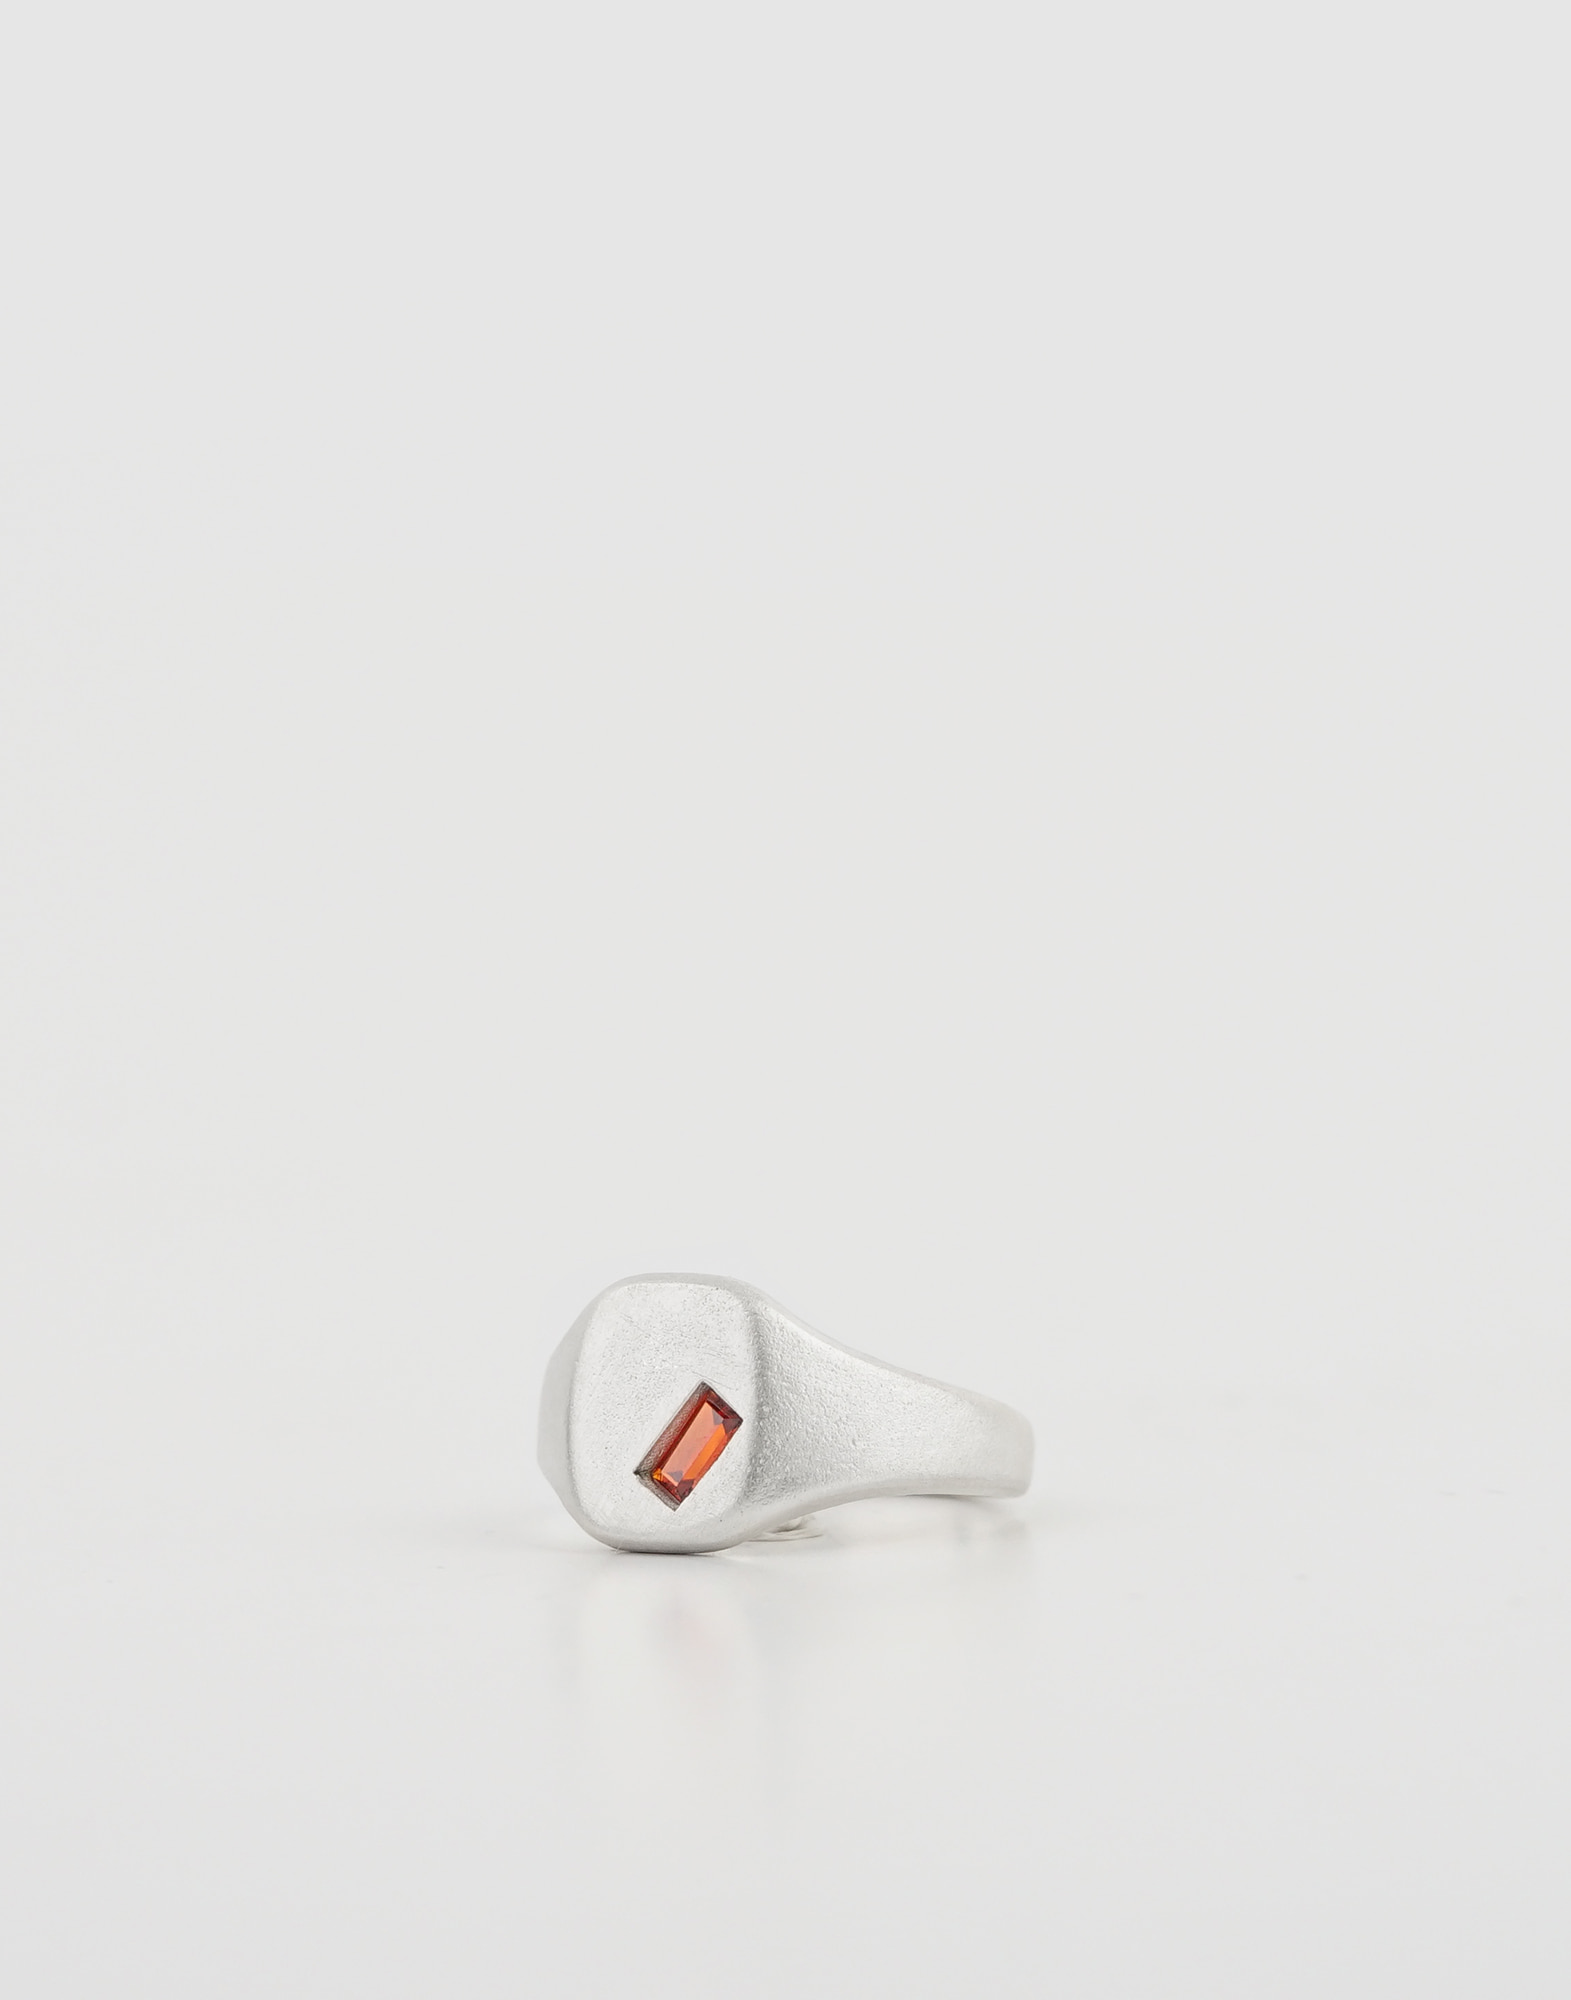 Signet ring(Red Orange Crystal)